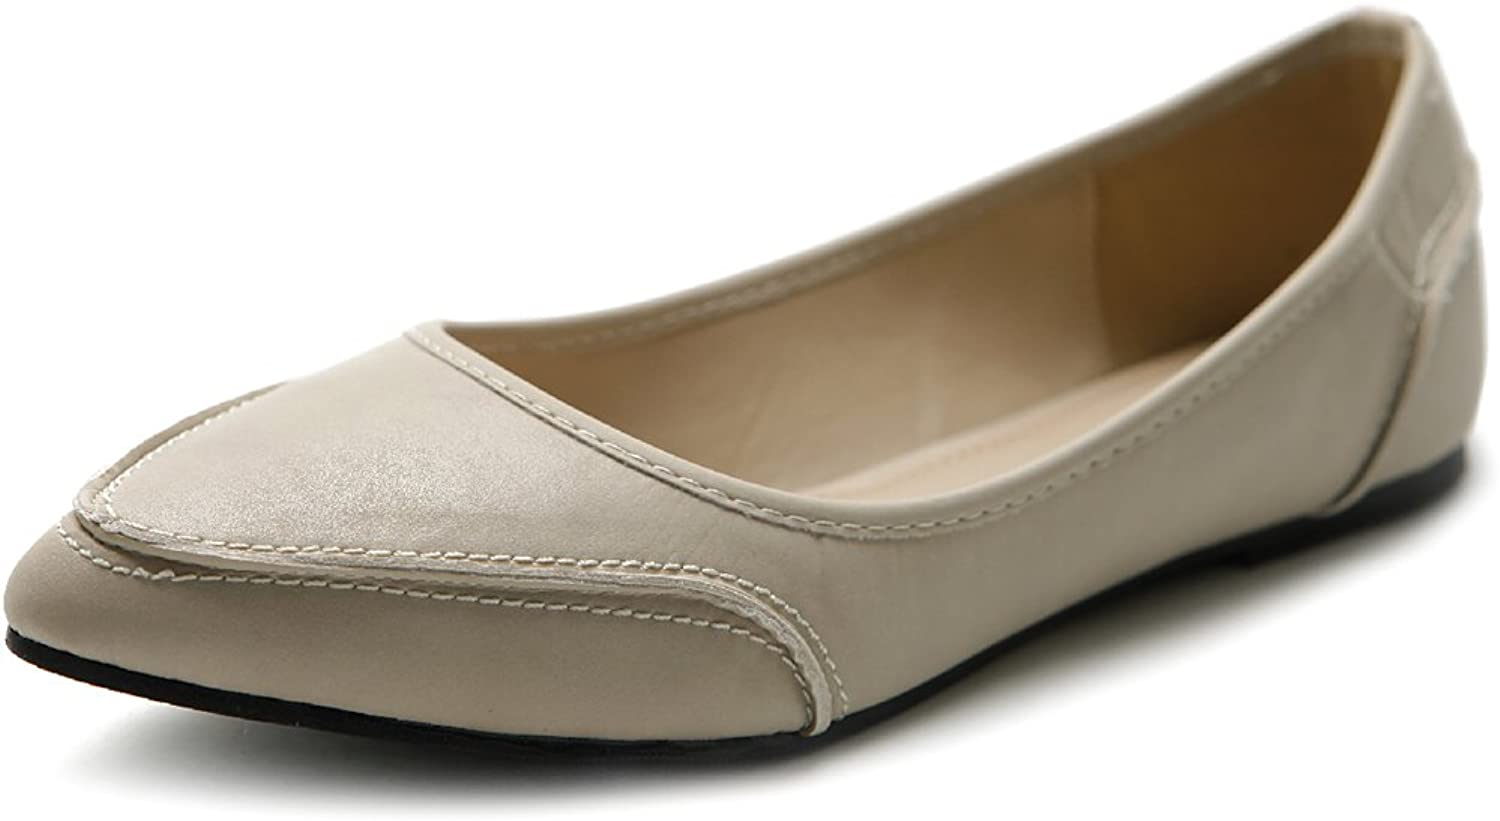 Ollio Women's shoes Ballet Pointed Toe Pastel Low Flat